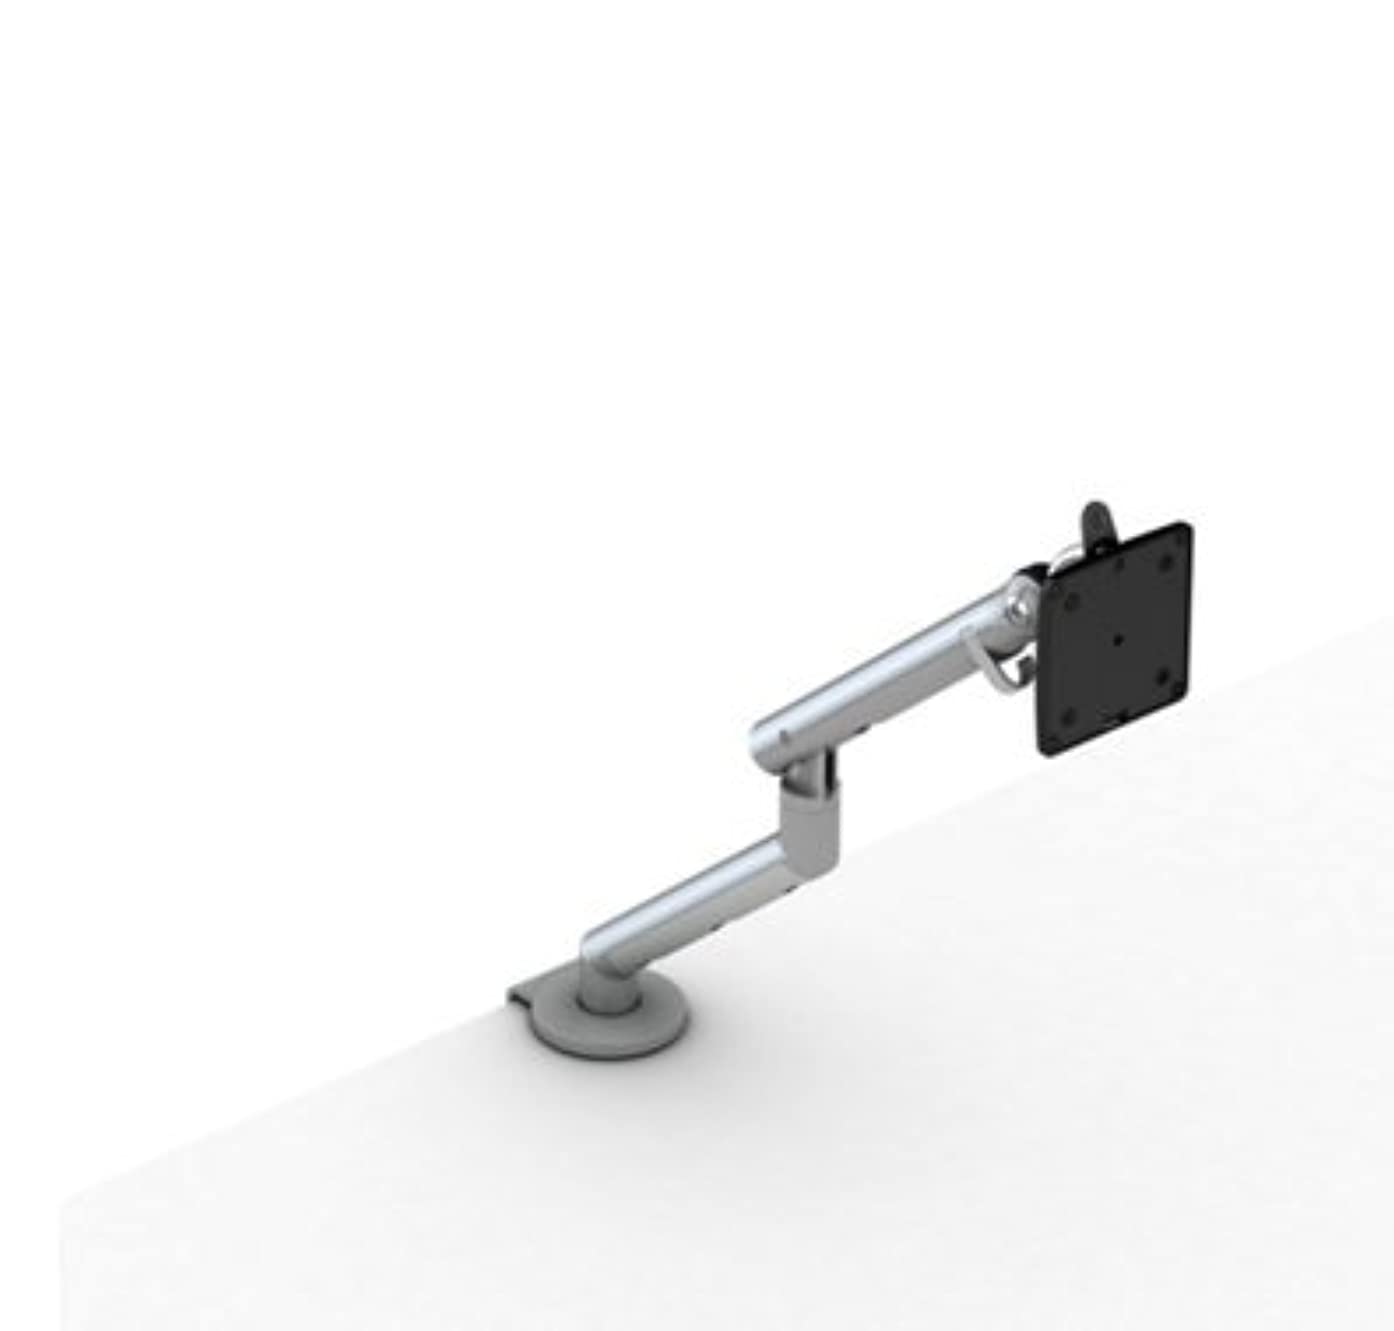 Herman Miller Flo Monitor Support: Surface Clamp - Single Monitor - Silver Finish